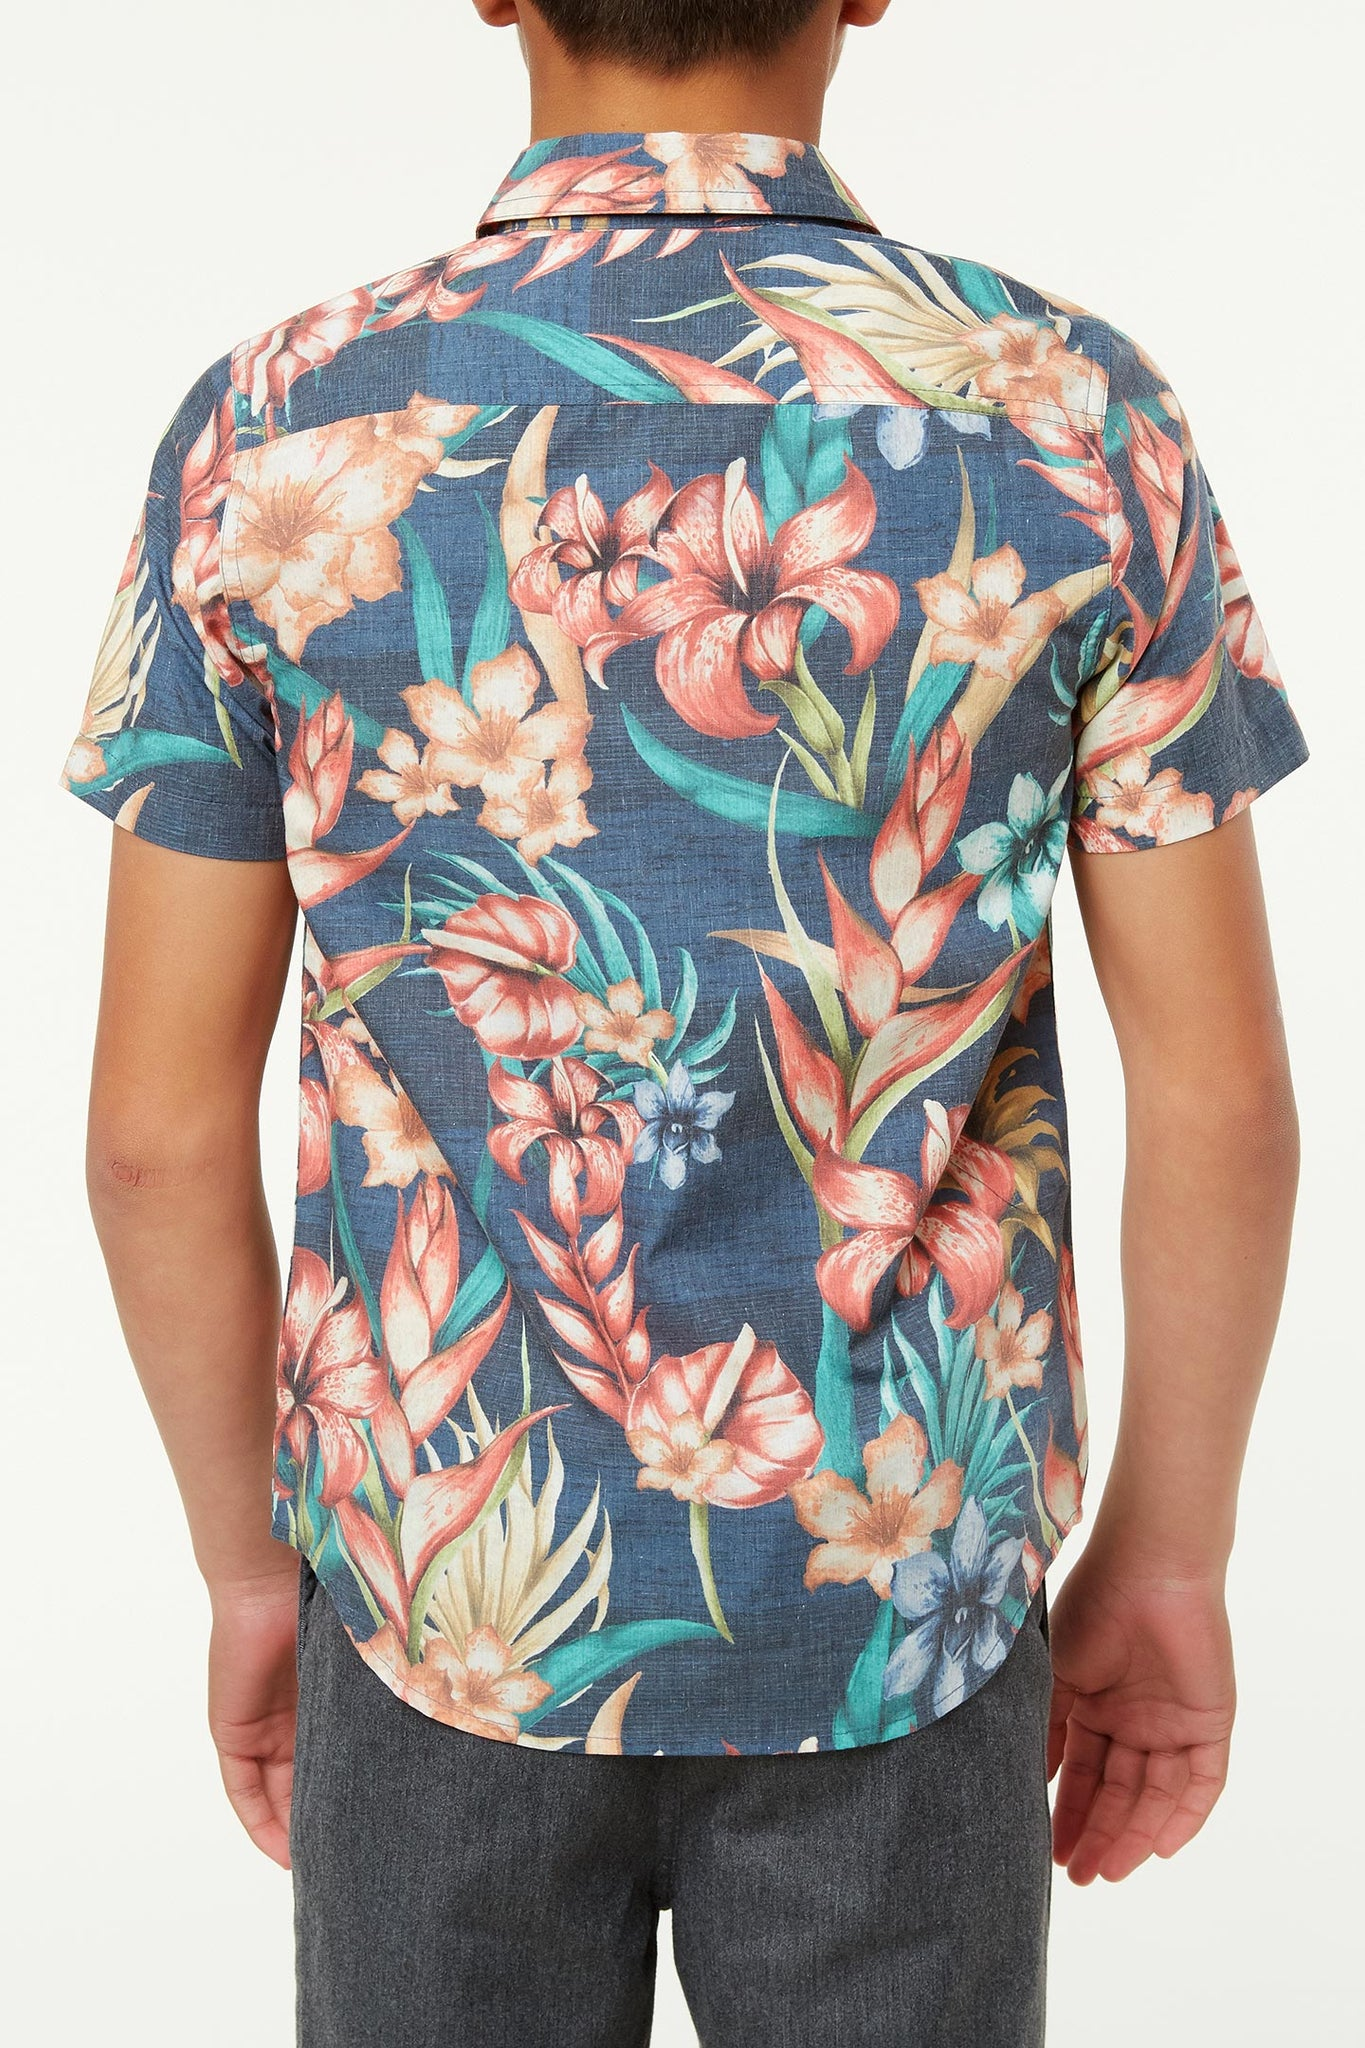 Boys Blissful Shirt | O'Neill Clothing USA